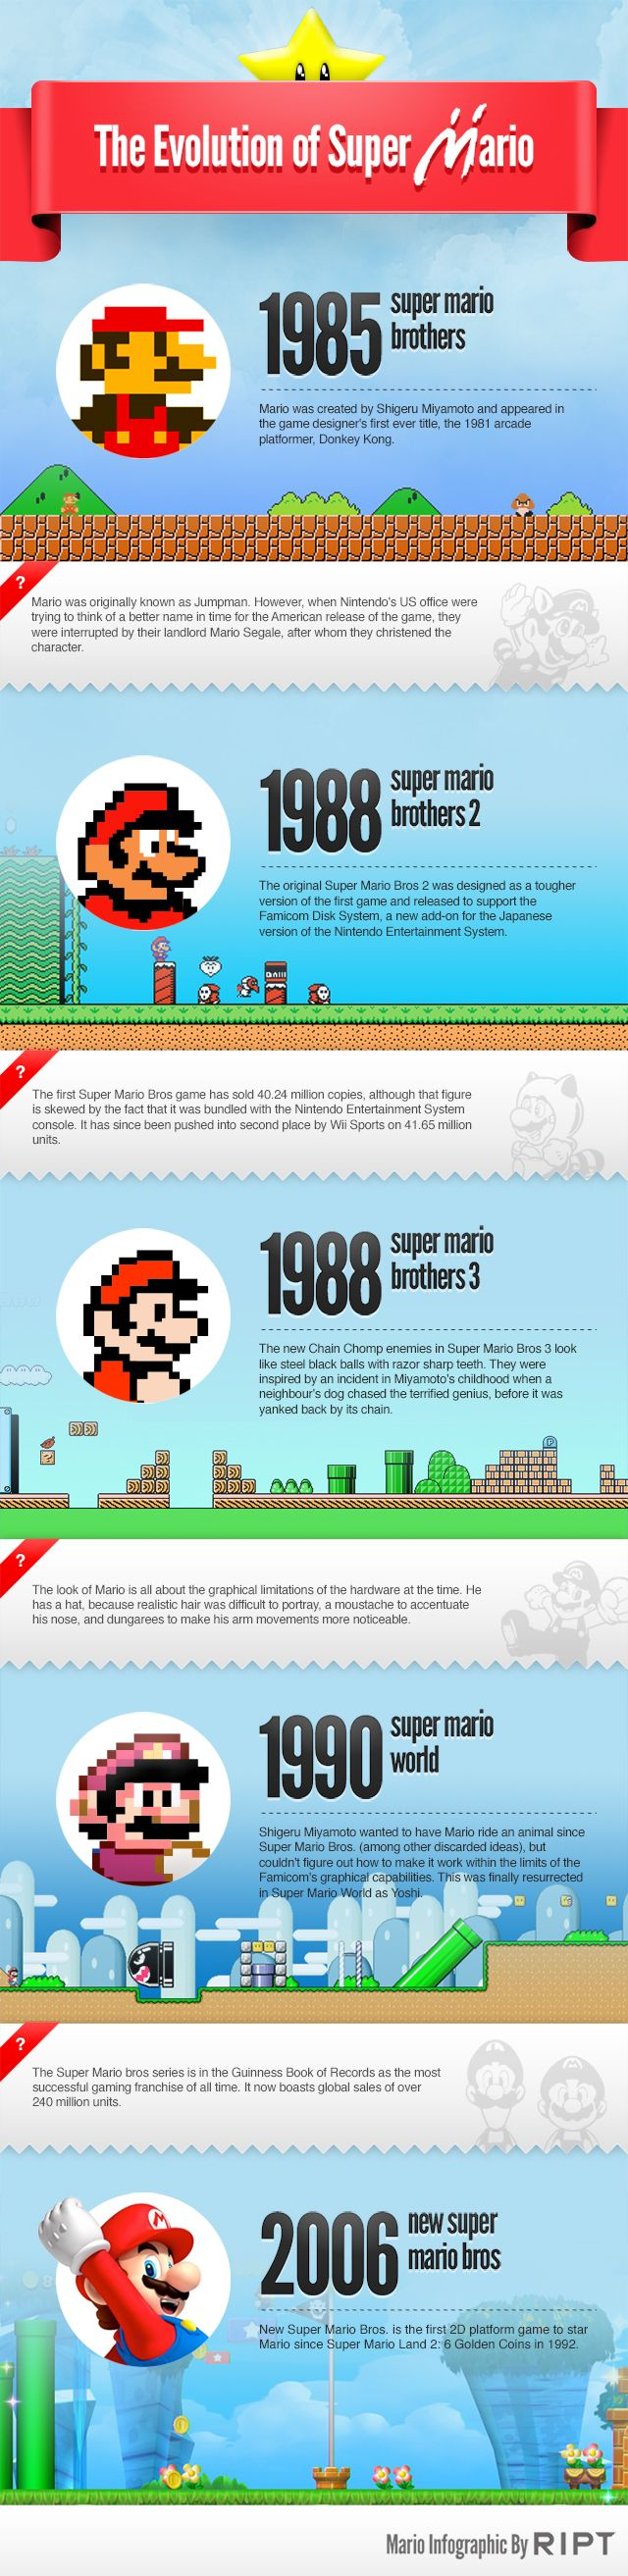 The Evolution of SUPER MARIO: Many Interesting Facts About Our Favorite Plumber - News - GeekTyrant